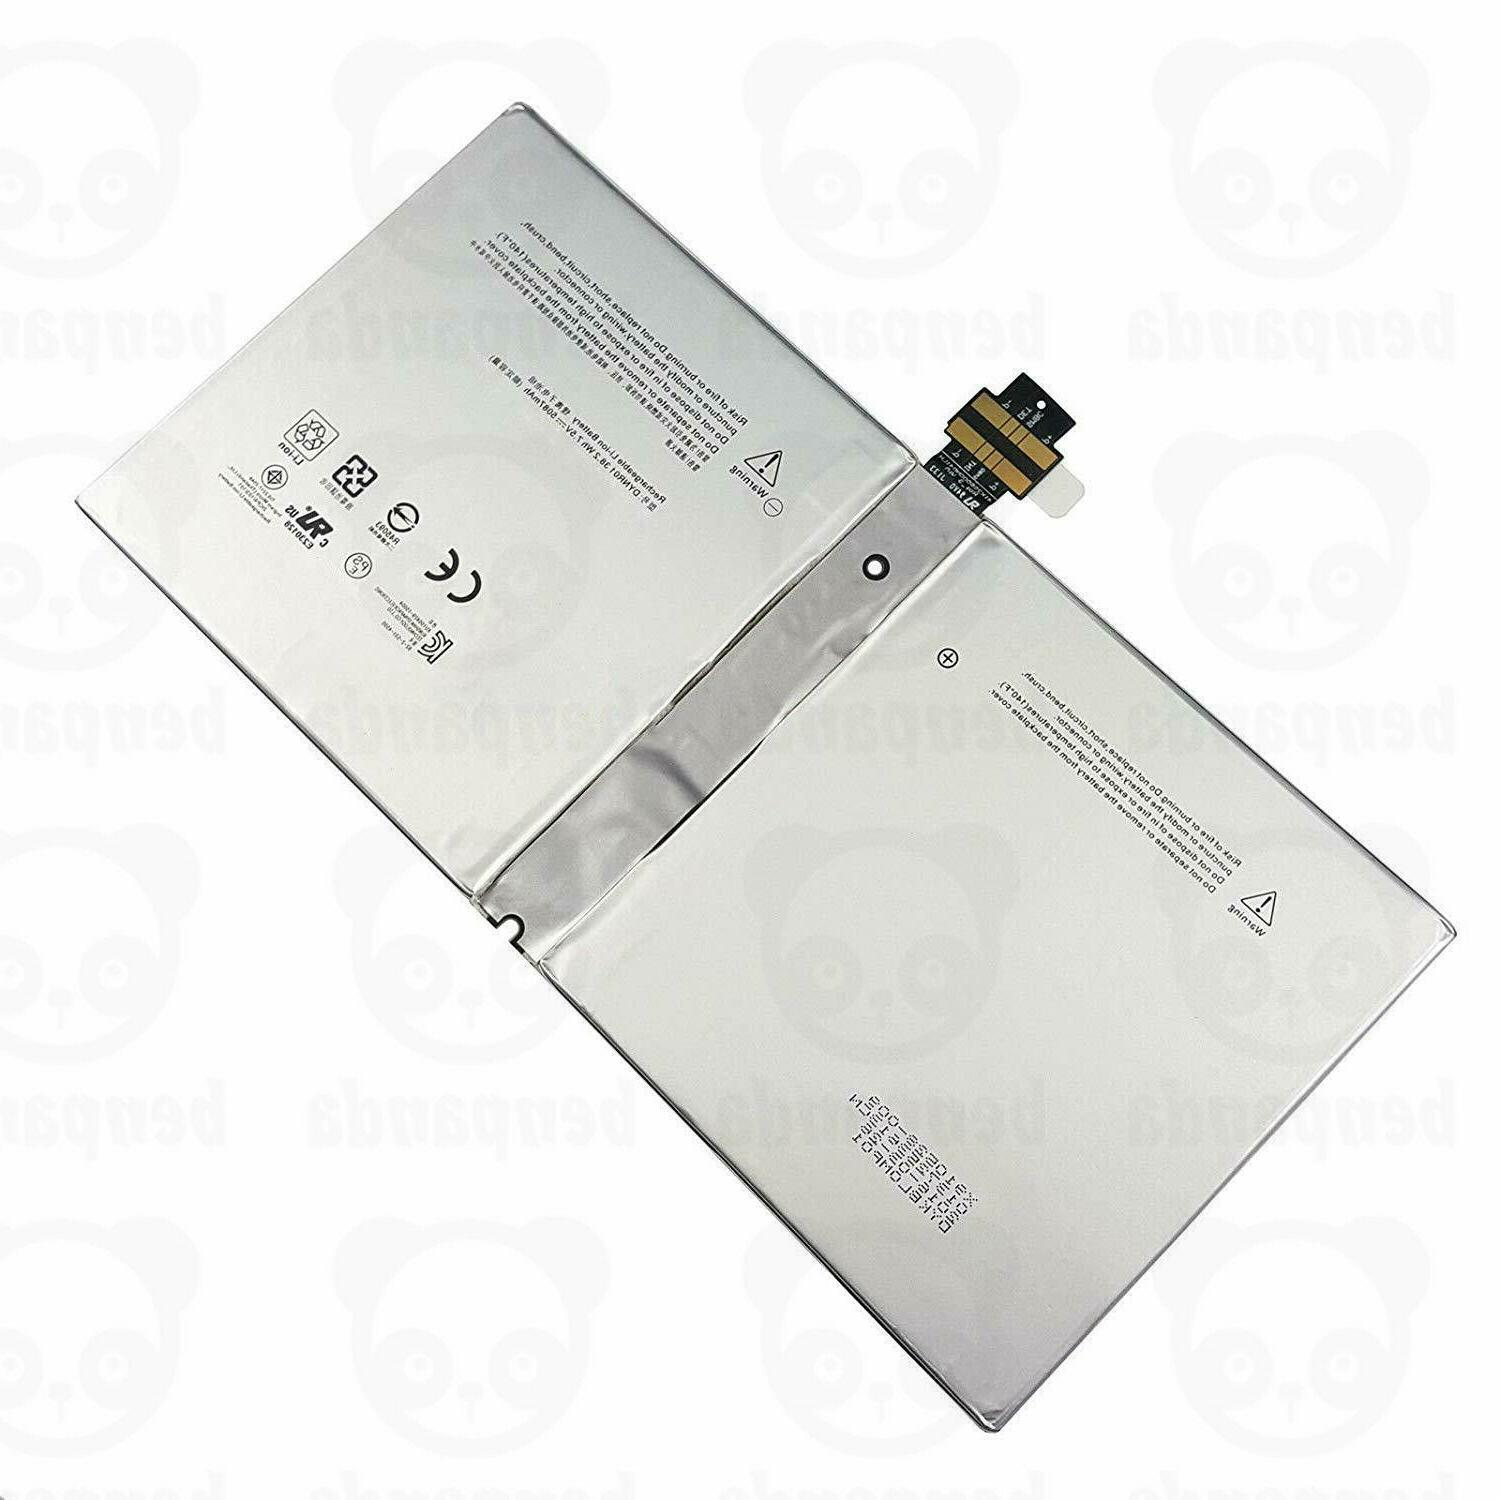 DYNR01 Battery for Microsoft Surface Pro Series G3HTA027H Tools